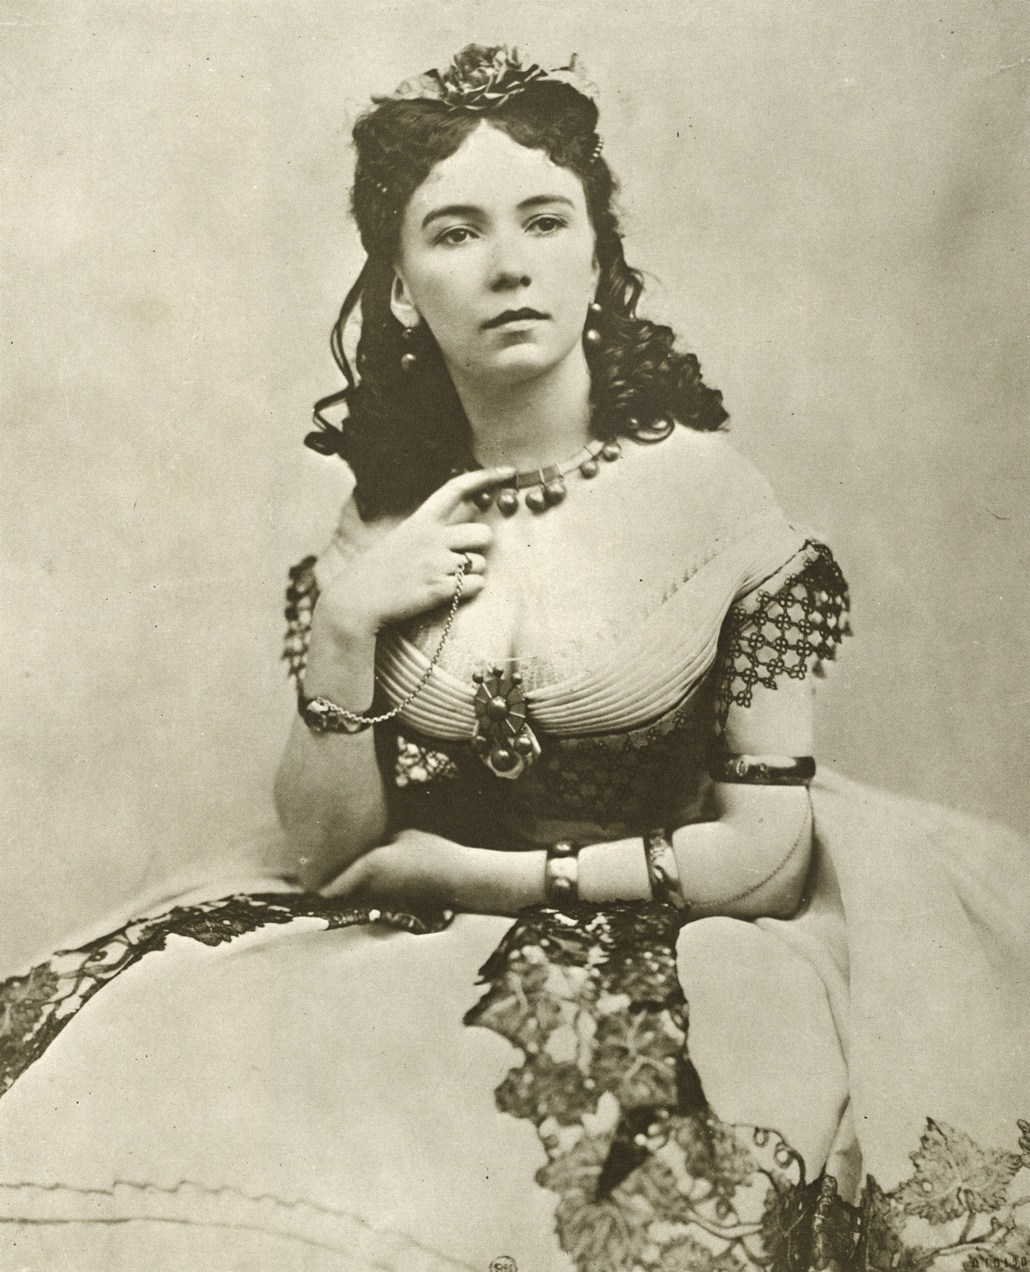 http://upload.wikimedia.org/wikipedia/commons/d/d2/Cora_Pearl_(A).jpg